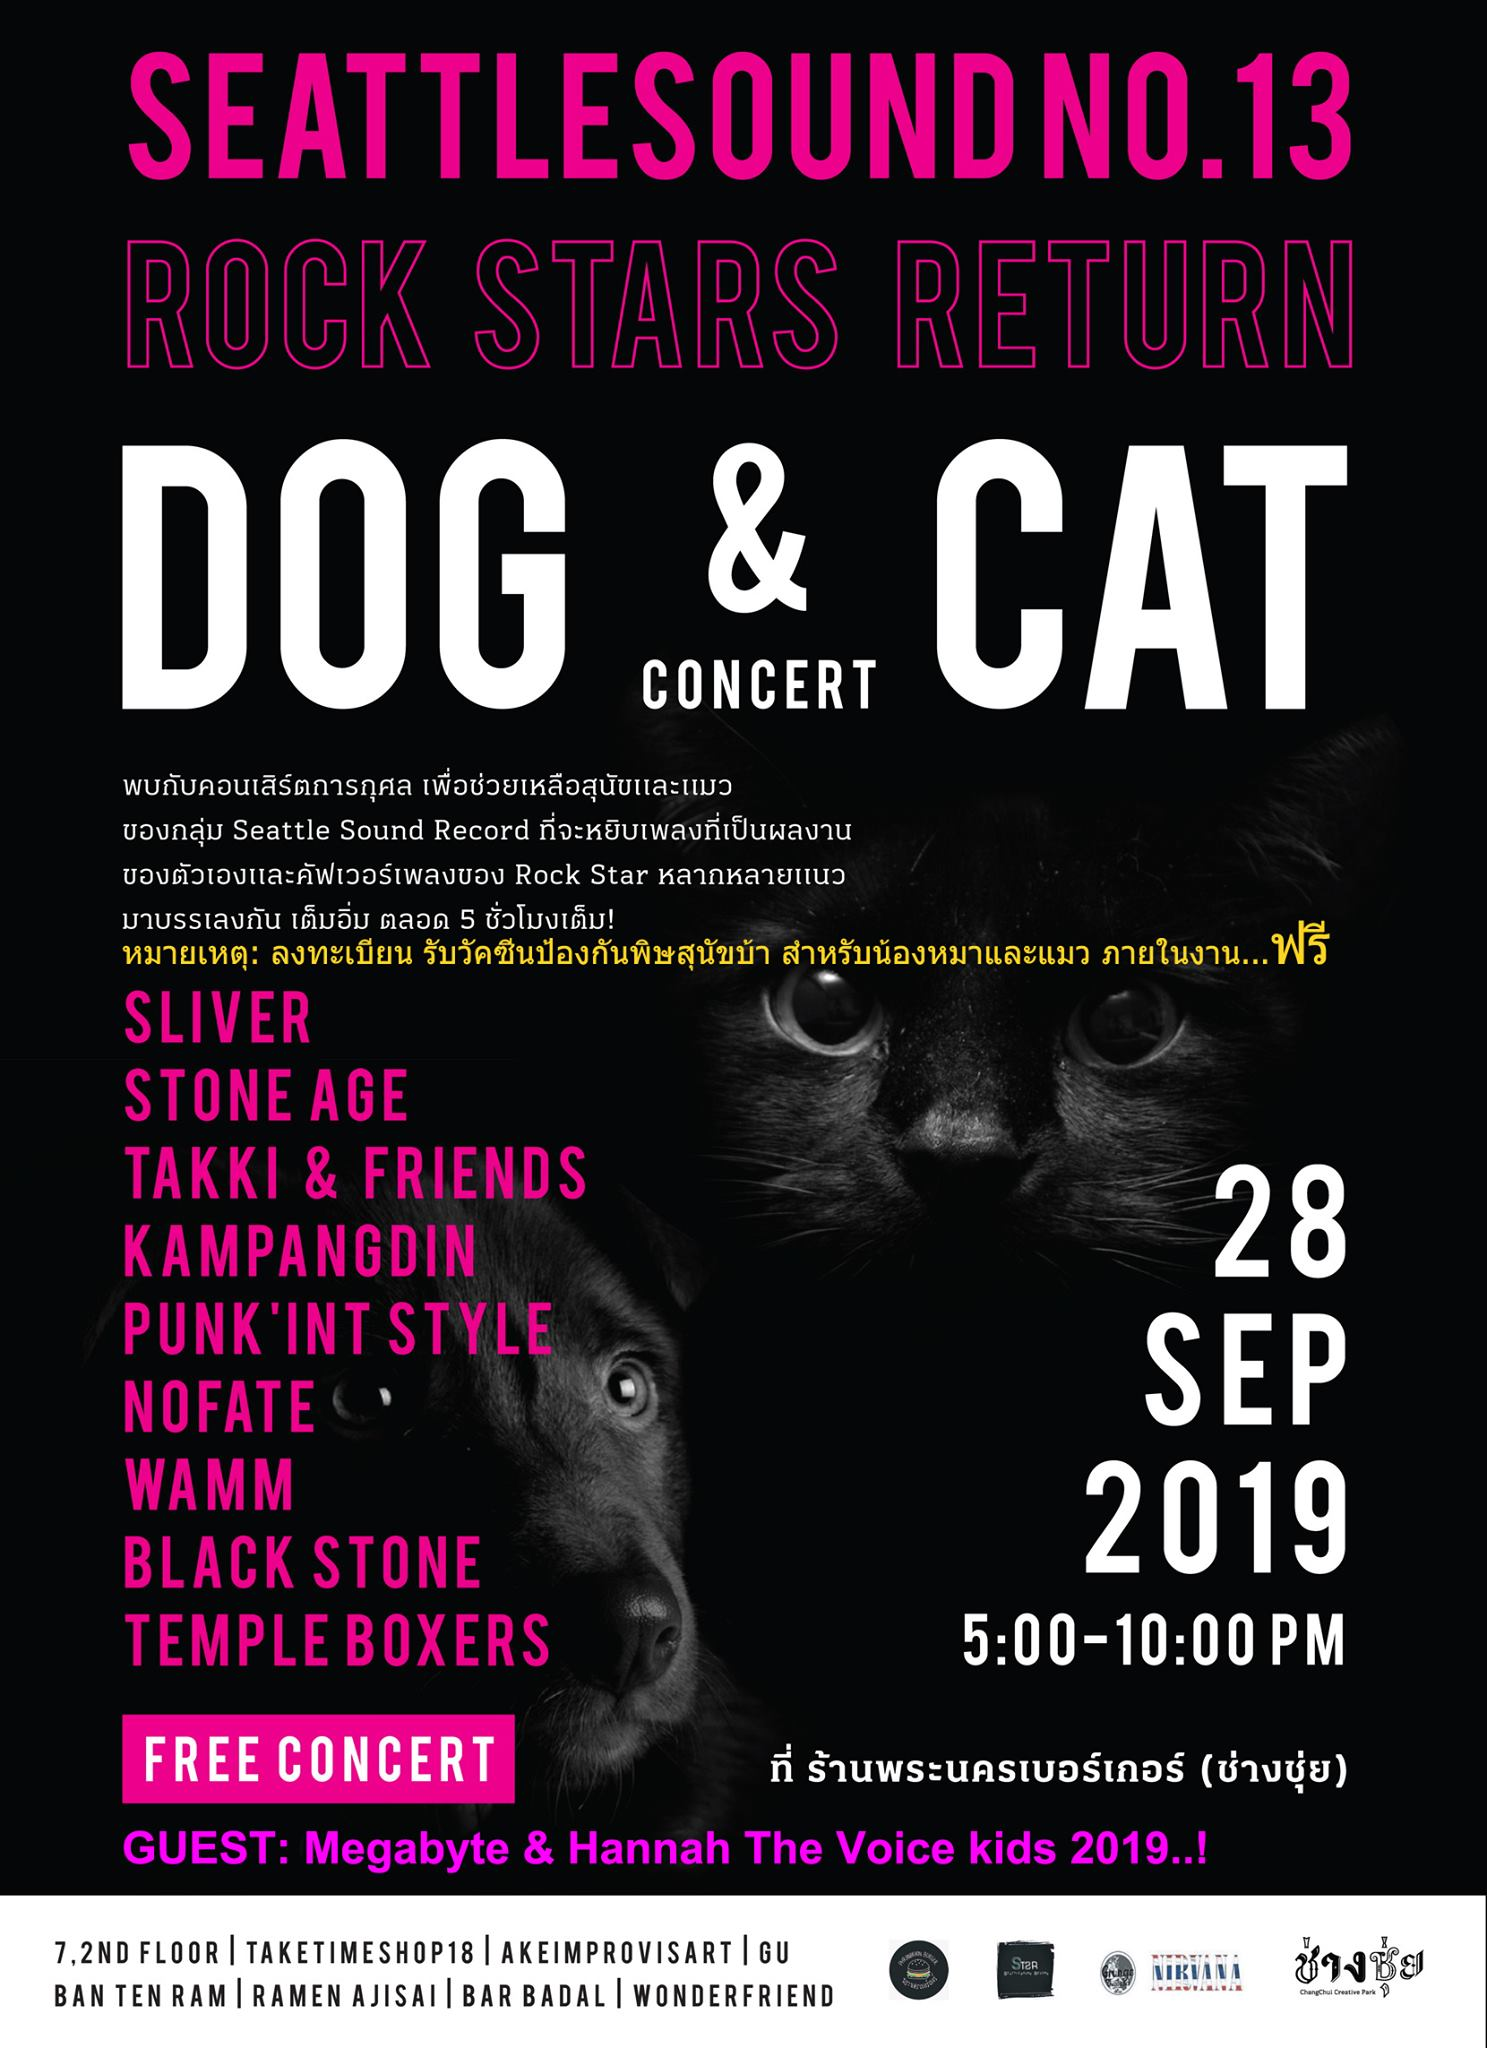 Dog & Cat ConcertRock Stars Return, Seattlesound Records, 28th September